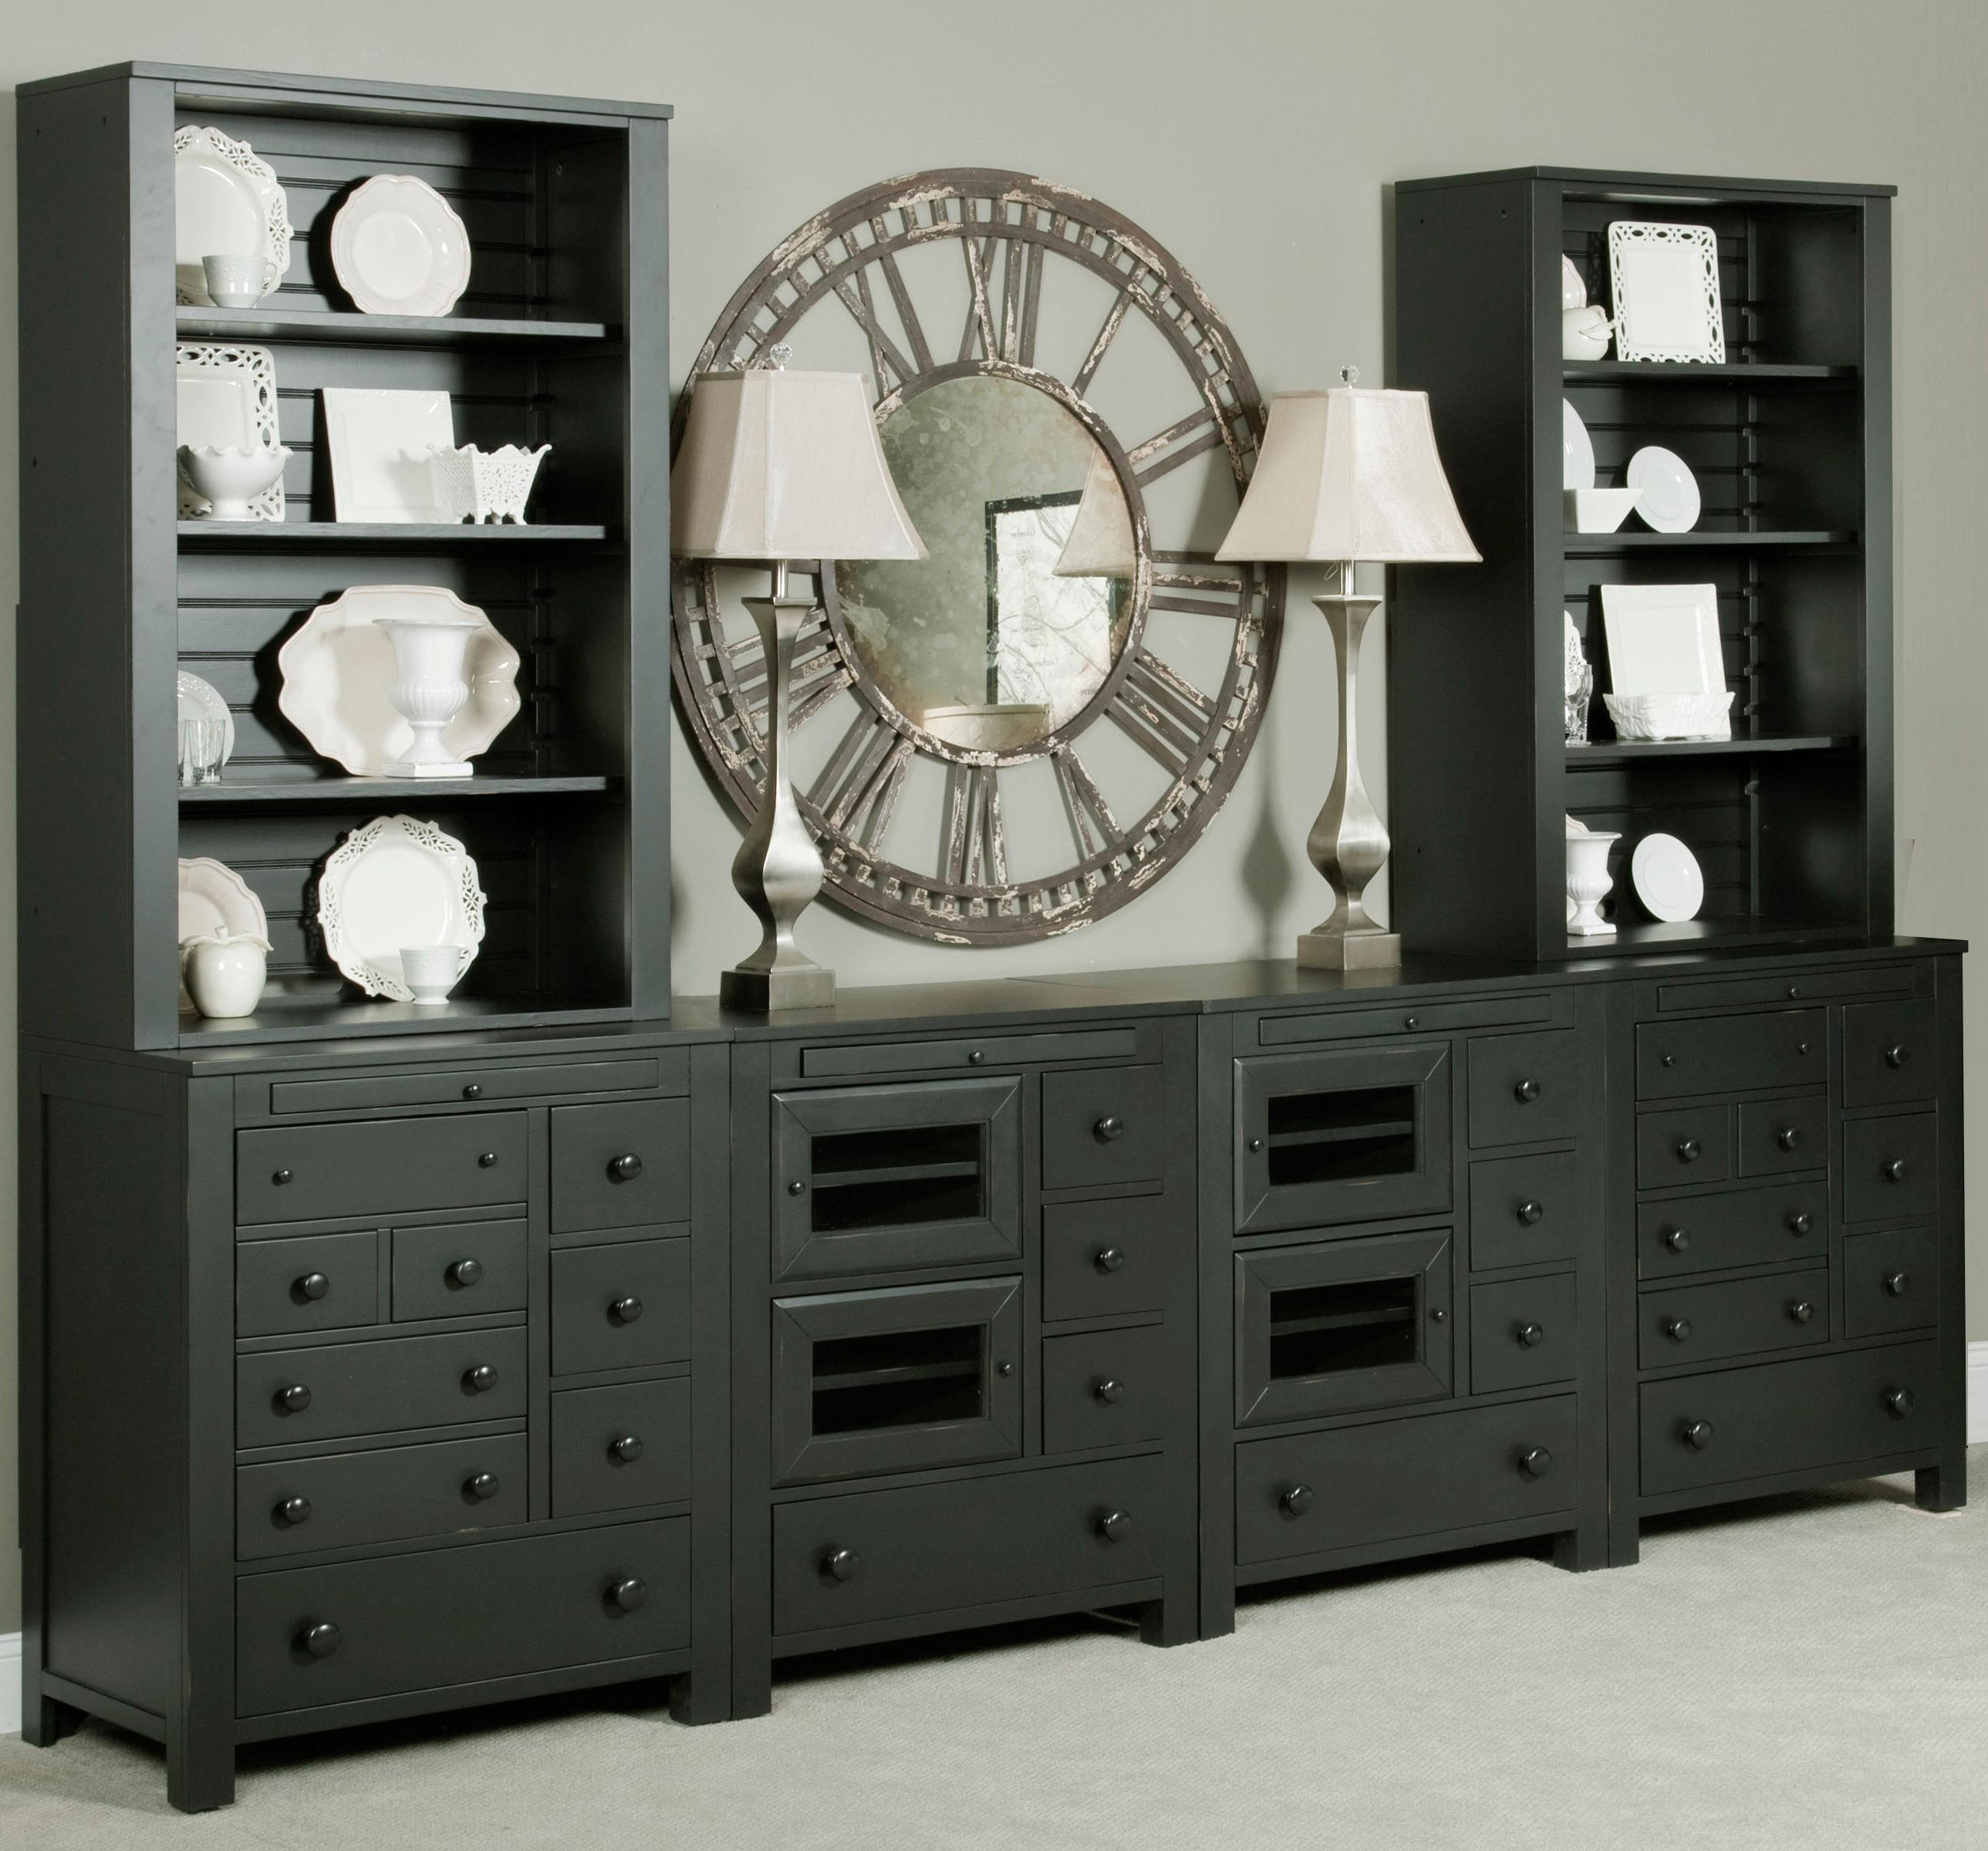 Broyhill Furniture New Vintage Wall Unit - Item Number: 4809-064x2+2x065+2x066